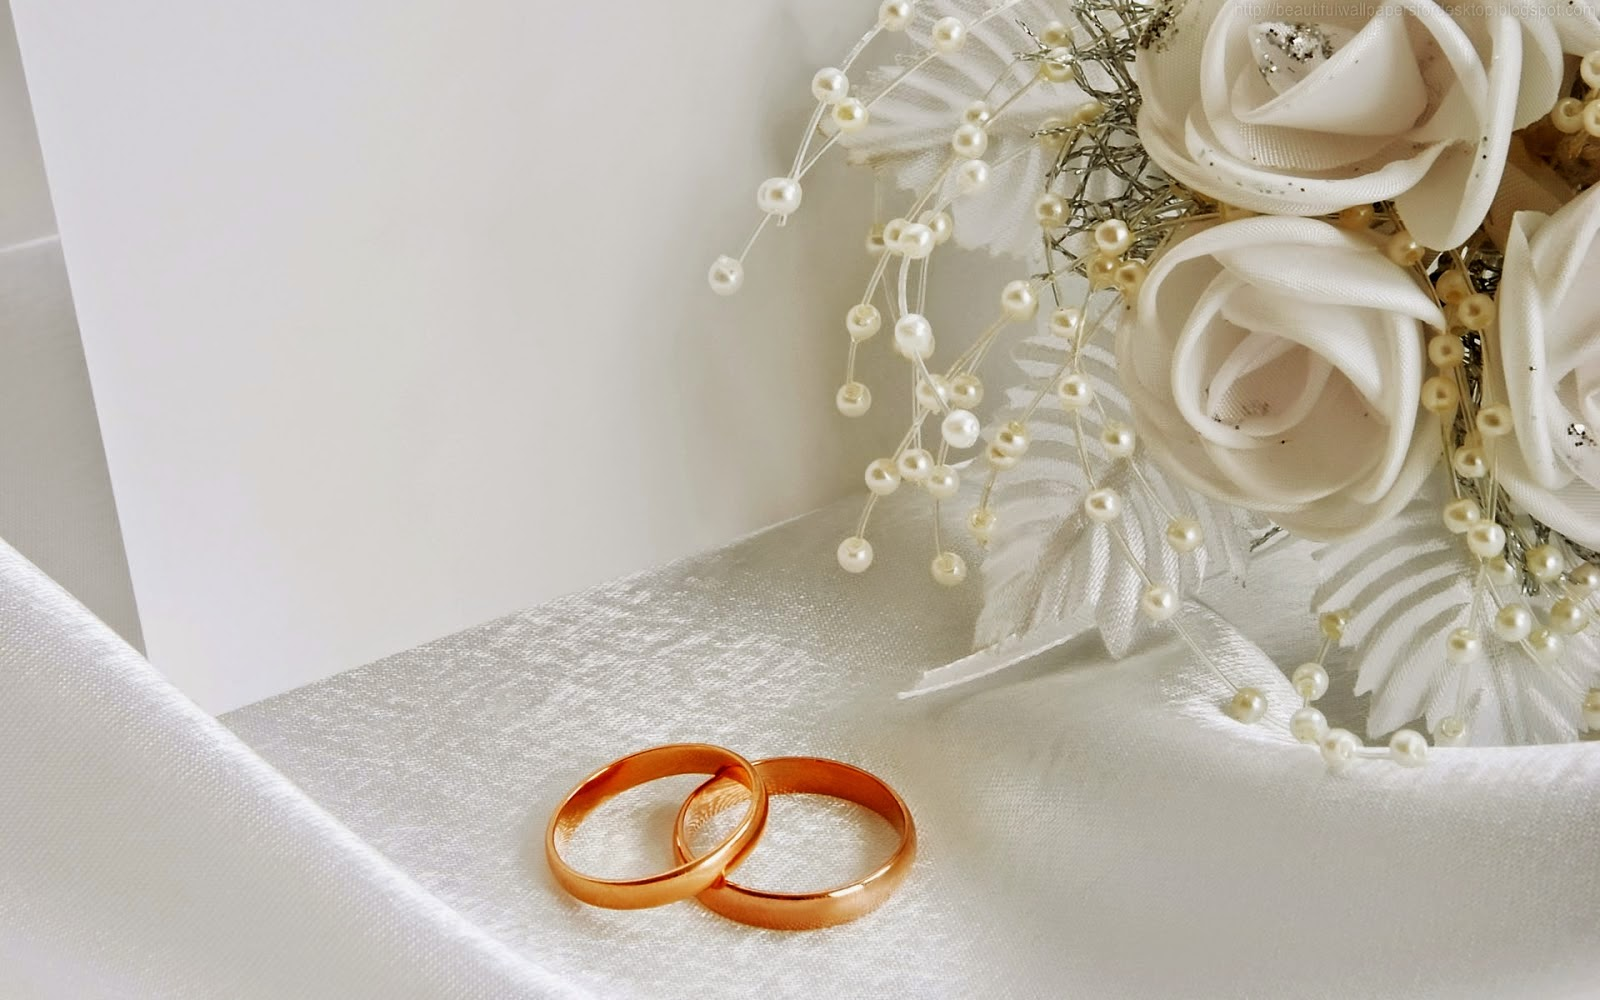 Ring Ceremony Hd Wallpaper Engagement Rings Hd Wallpapers Image Wallpapers